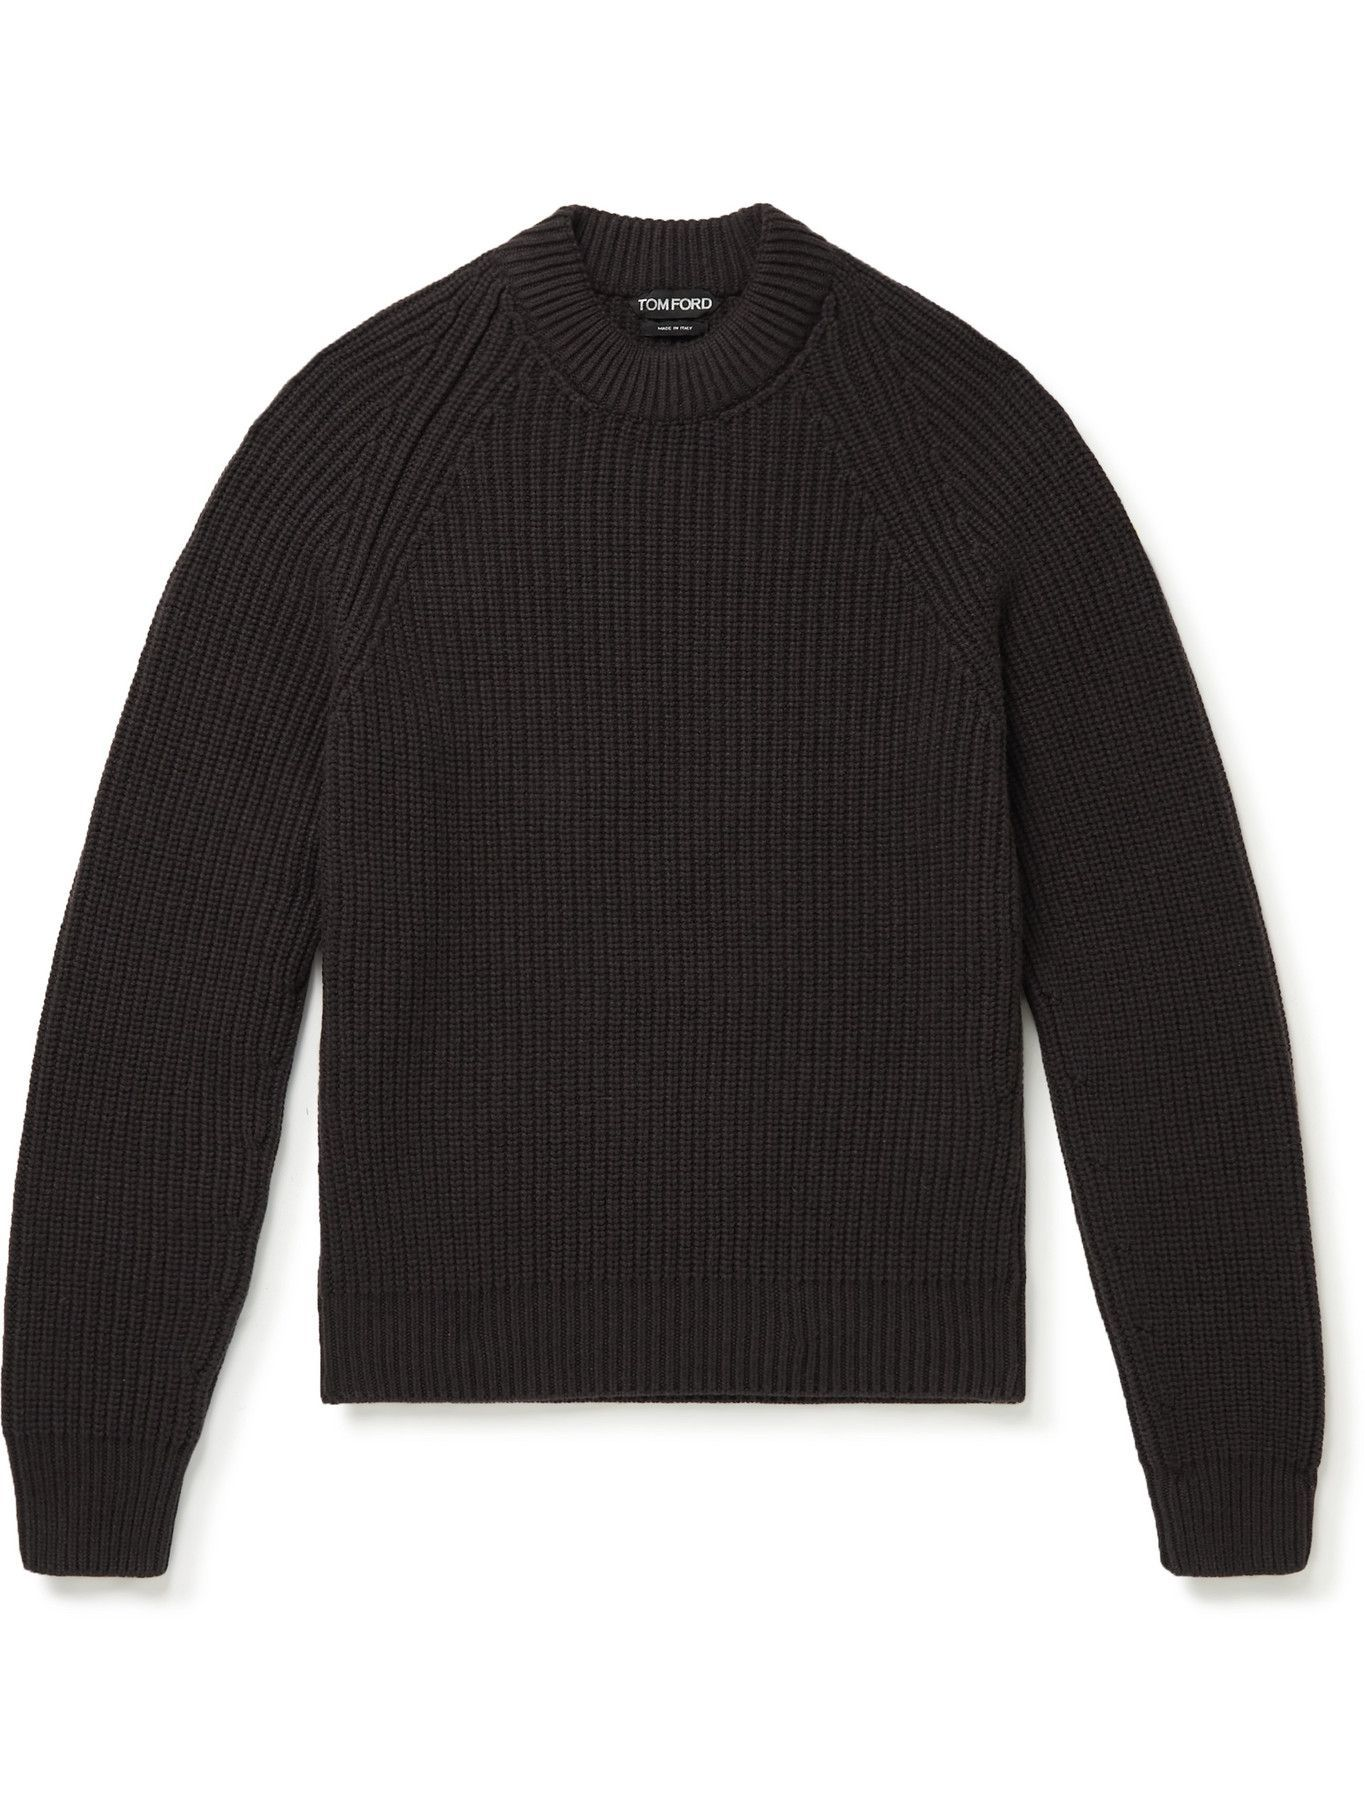 Photo: TOM FORD - Cashmere Mock-Neck Sweater - Brown